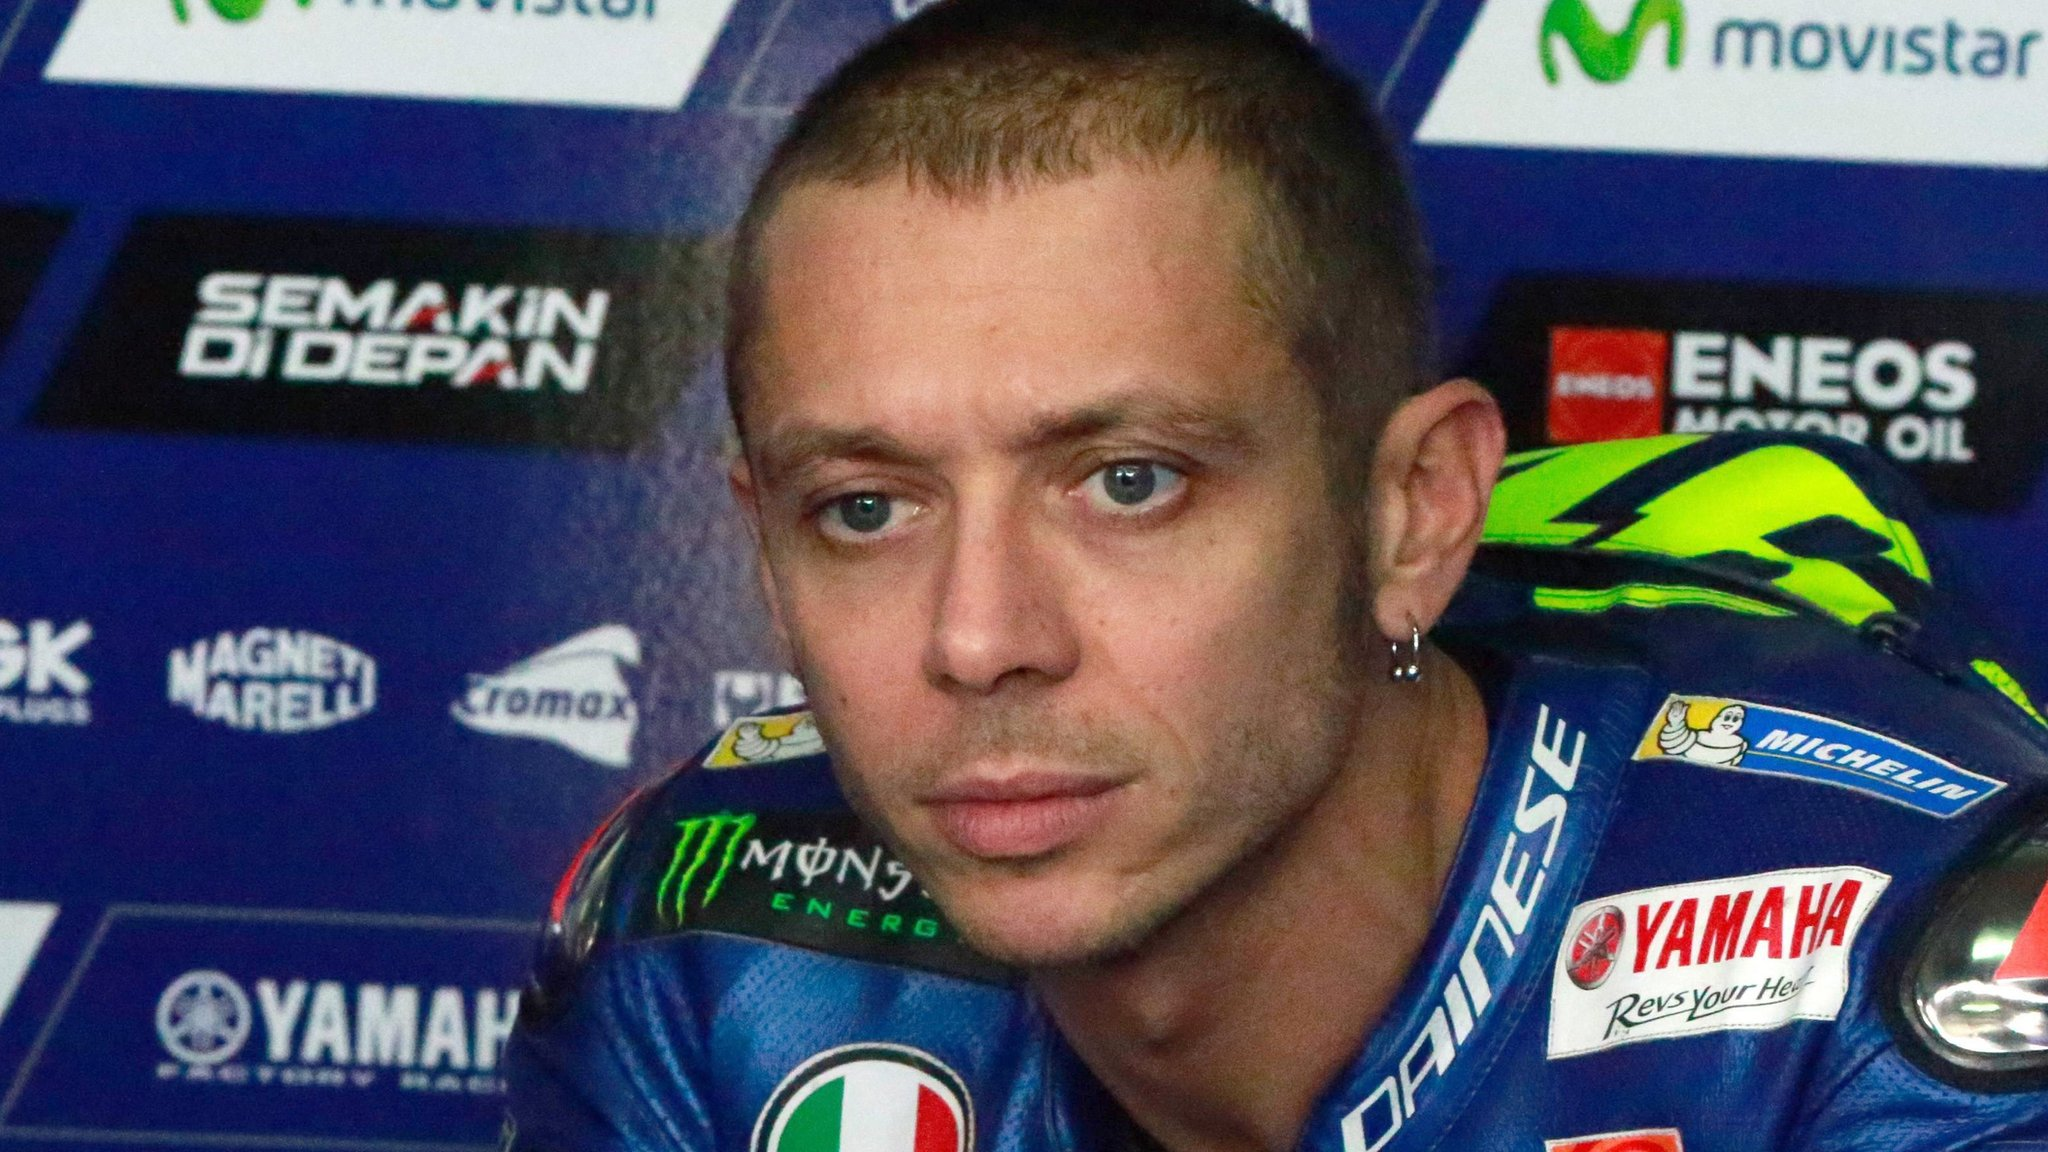 Valentino Rossi completes practice sessions at Aragon GP after double leg fracture